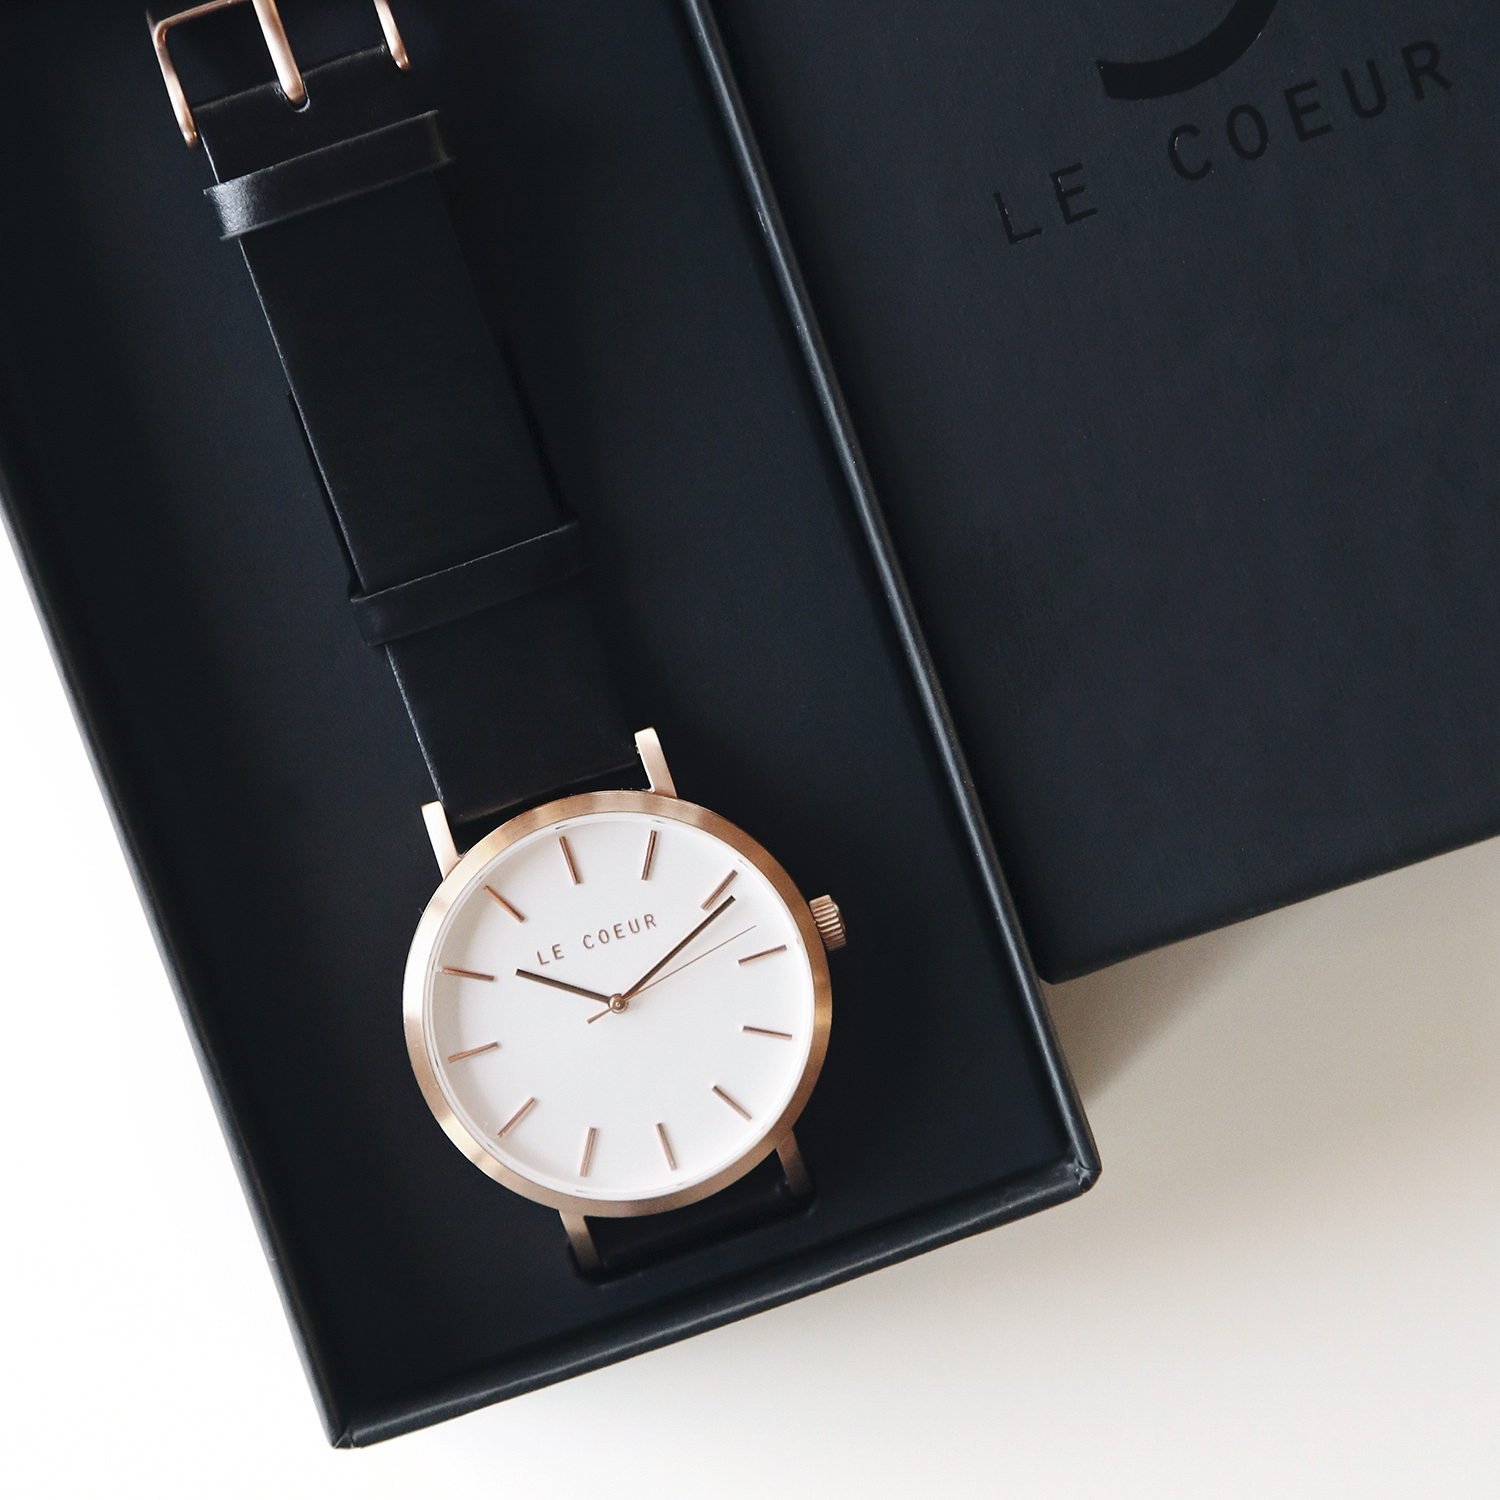 Le Coeur Rosegold and Black Dublin Timepiece.jpg